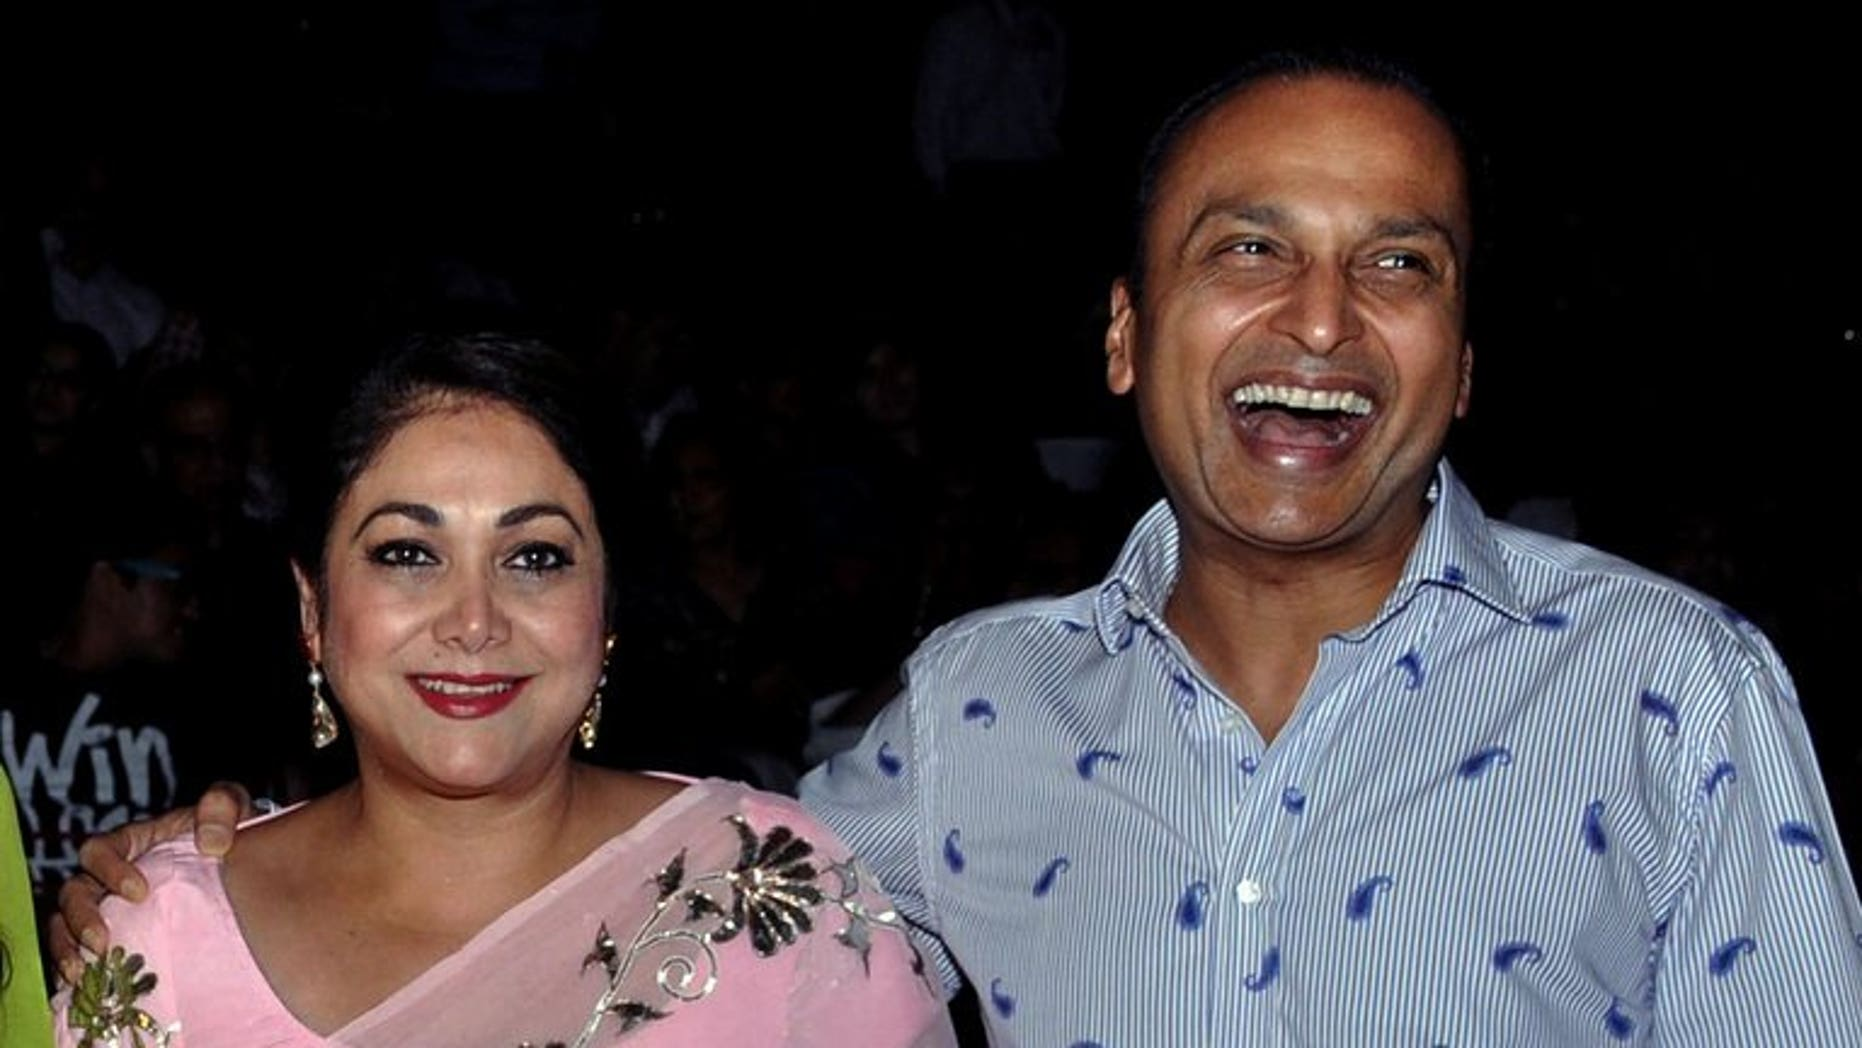 """Indian socialite Tina Ambani (L) and industrialist Anil Ambani, seen in Mumbai on October 18, 2012. The former Bollywood star has told a court hearing a massive corruption case that she had no knowledge of the companies allegedly involved as she is a """"housewife""""."""